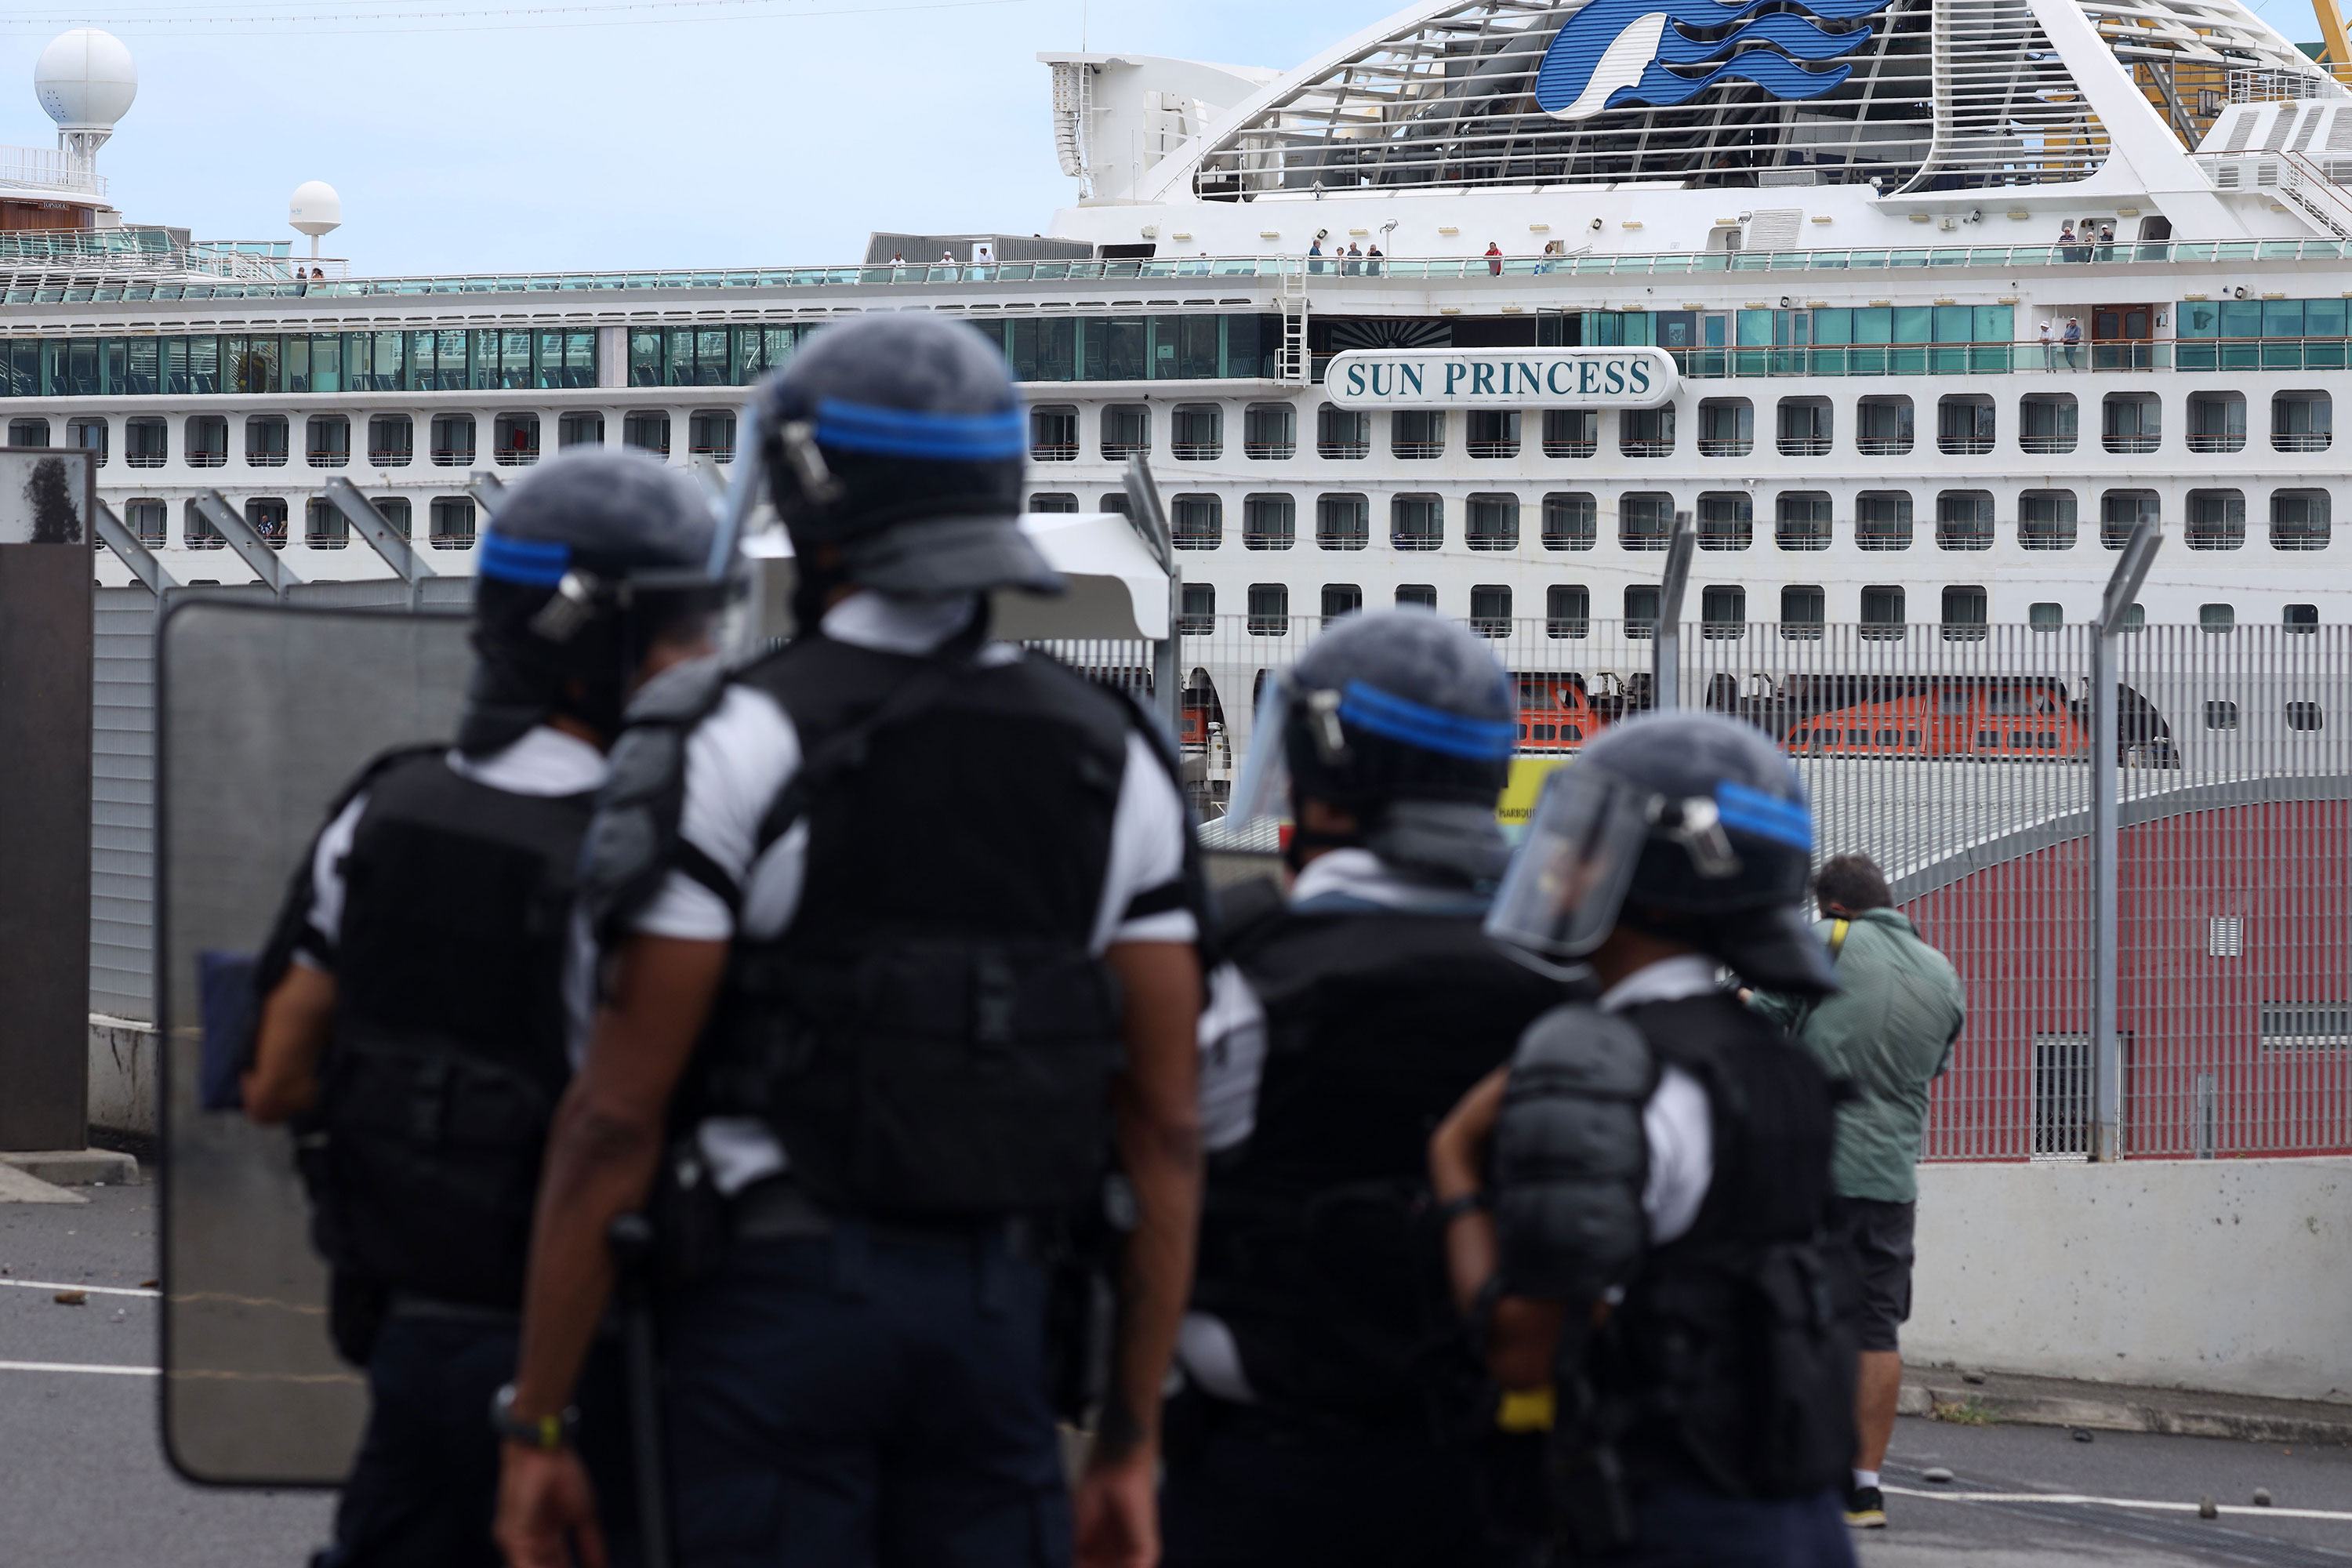 French police officers face demonstrators in Le Port on the Indian Ocean island of La Reunion on March 1.